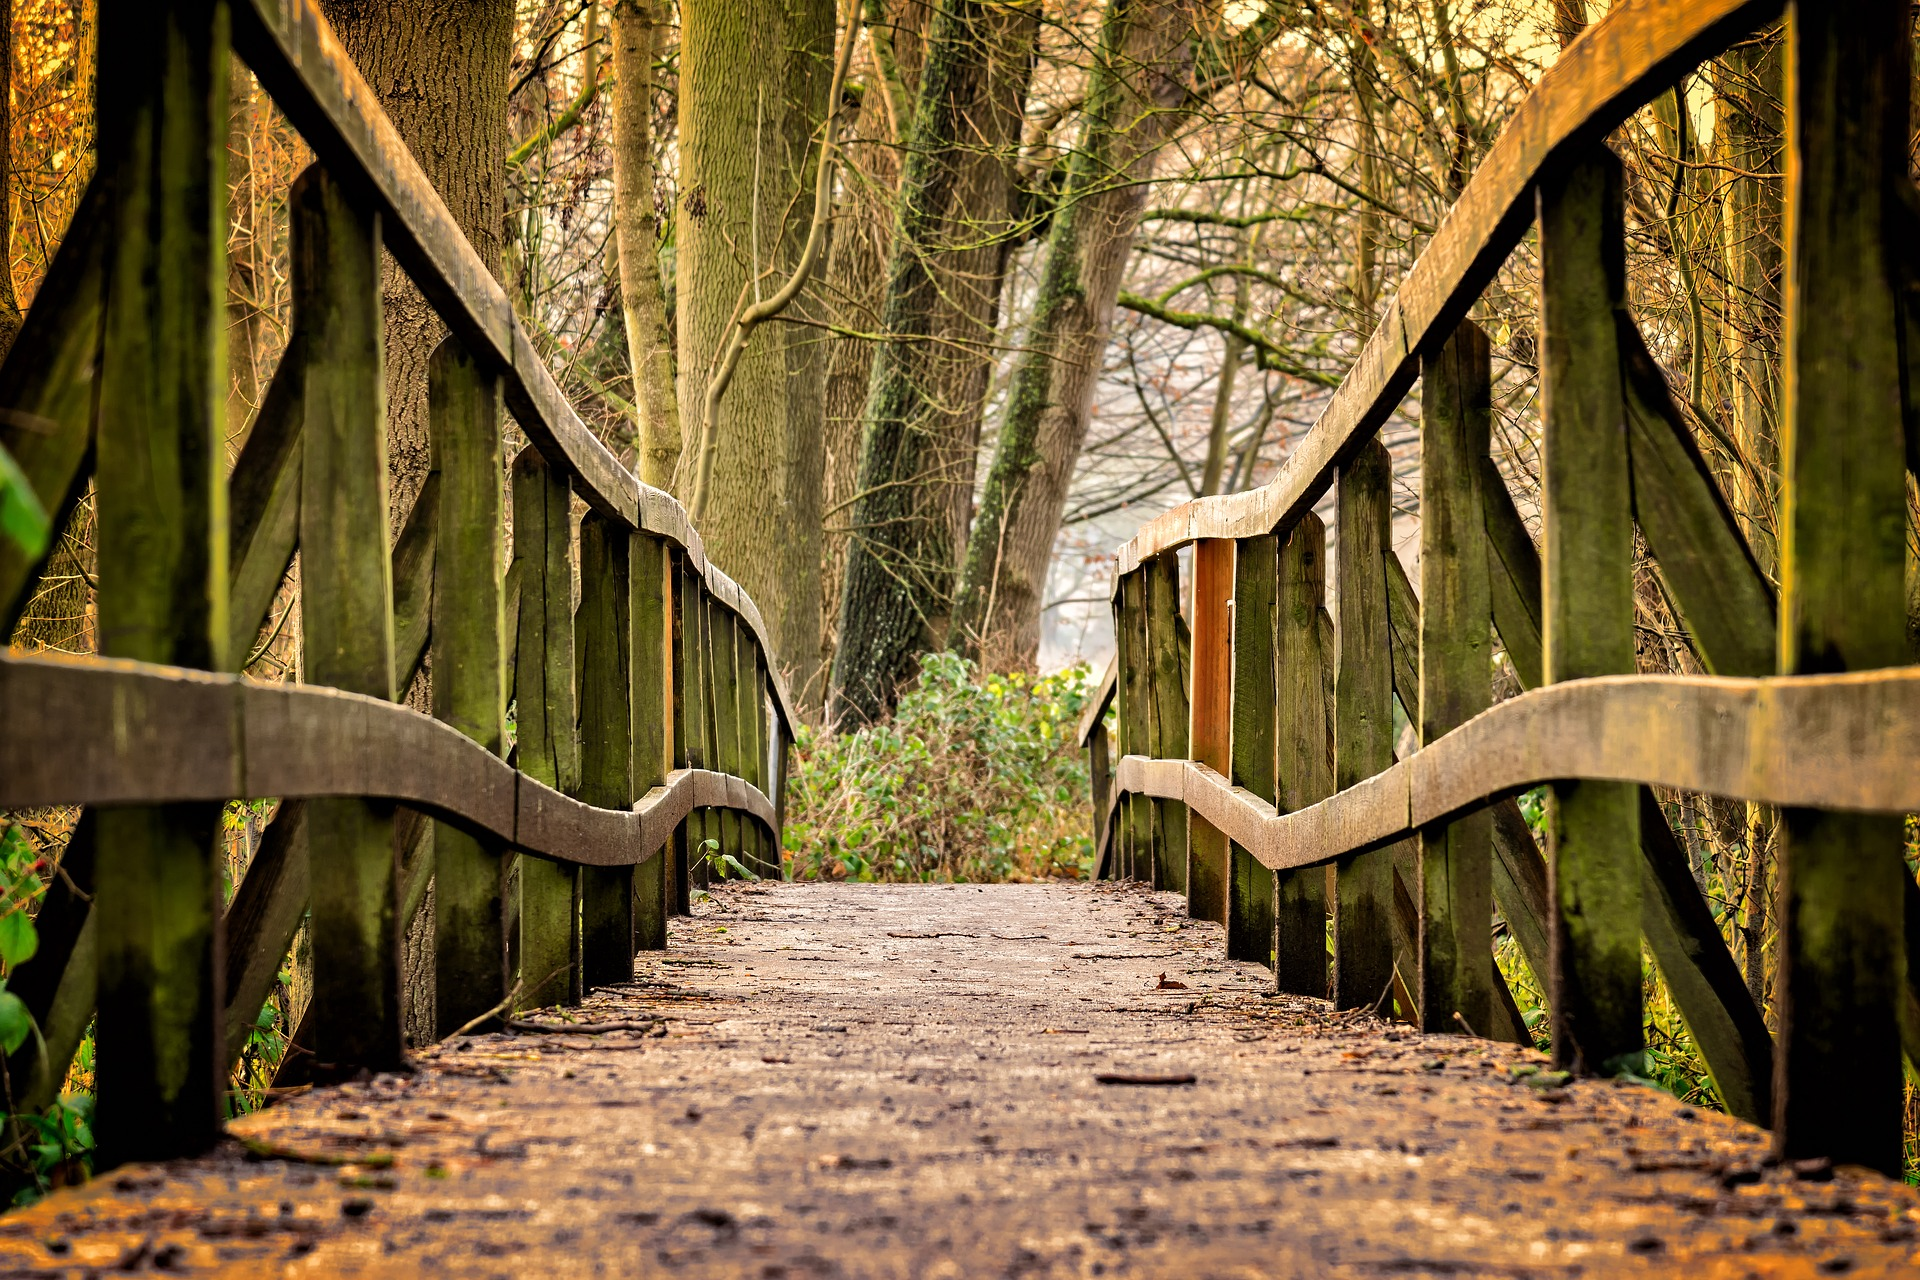 wooden bridge going through the forrest